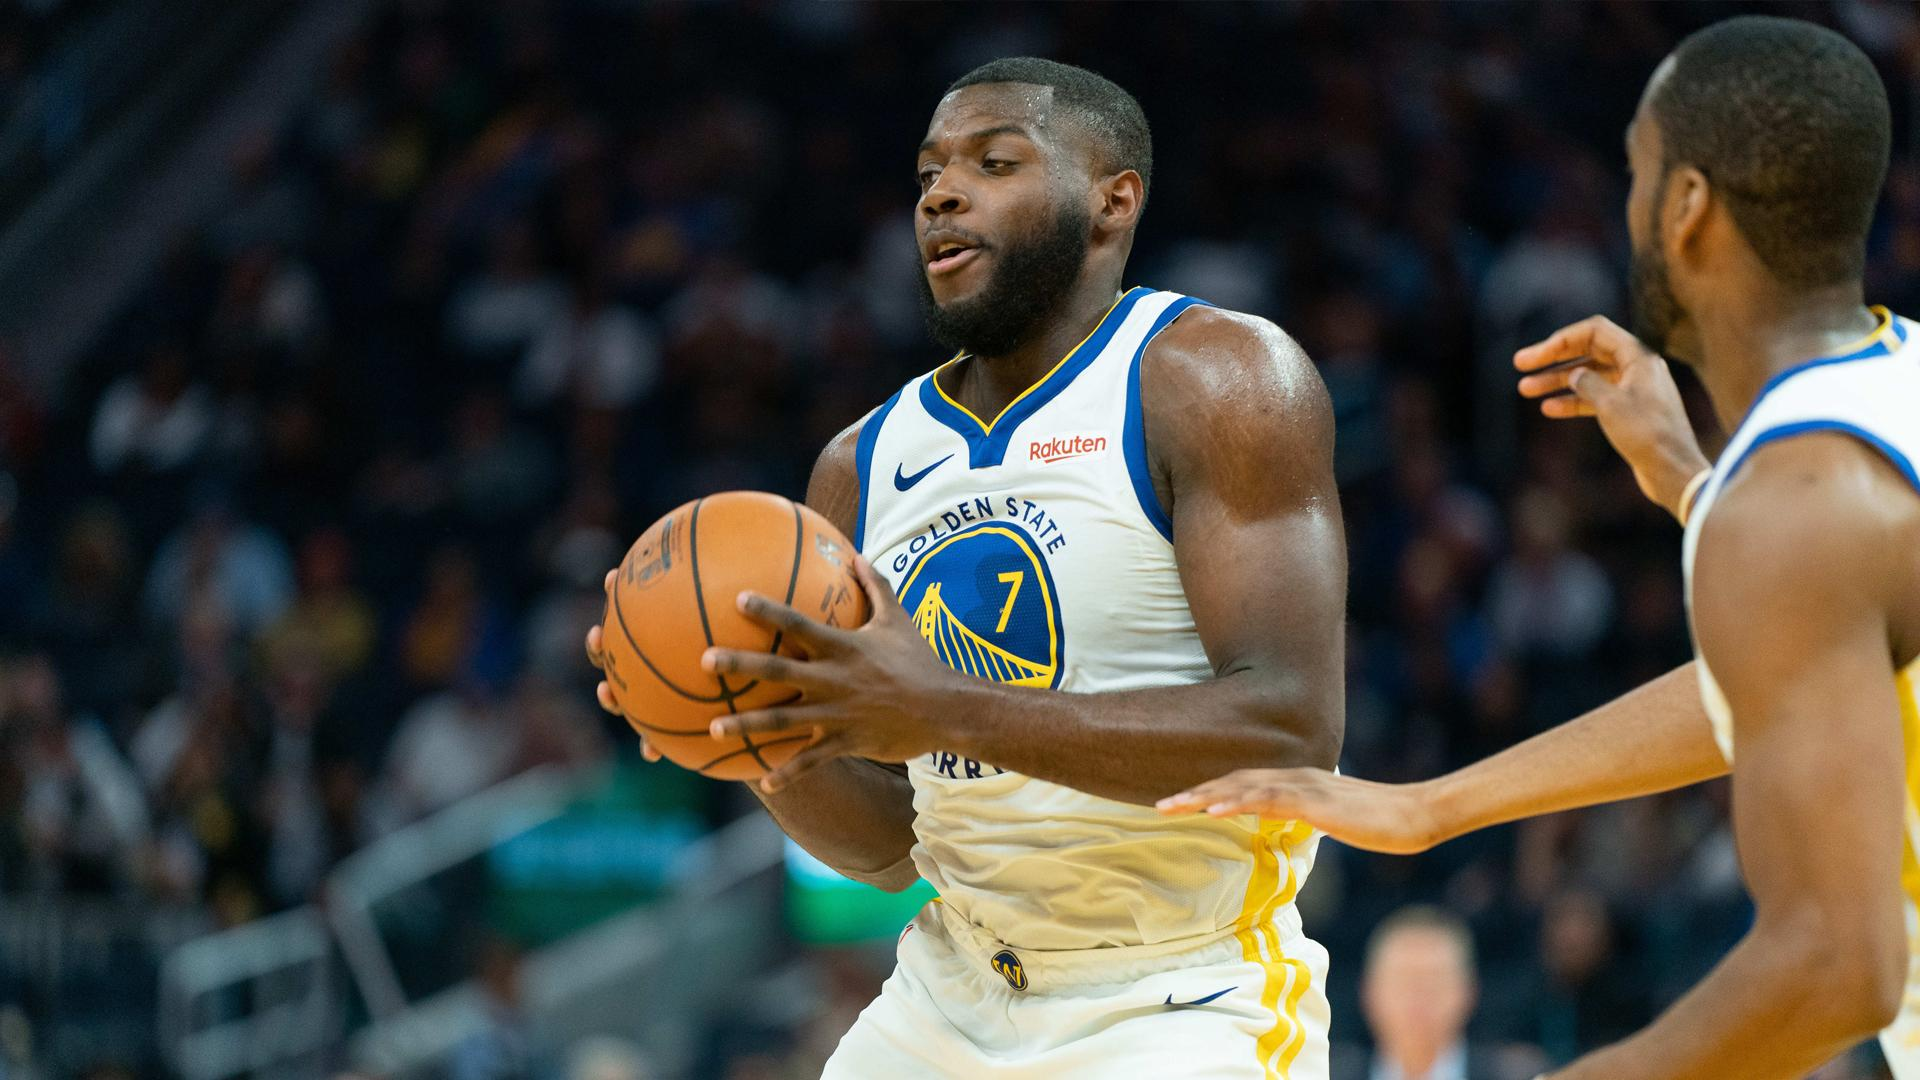 Warriors vs. Grizzlies watch guide: Lineups, injuries, player usage